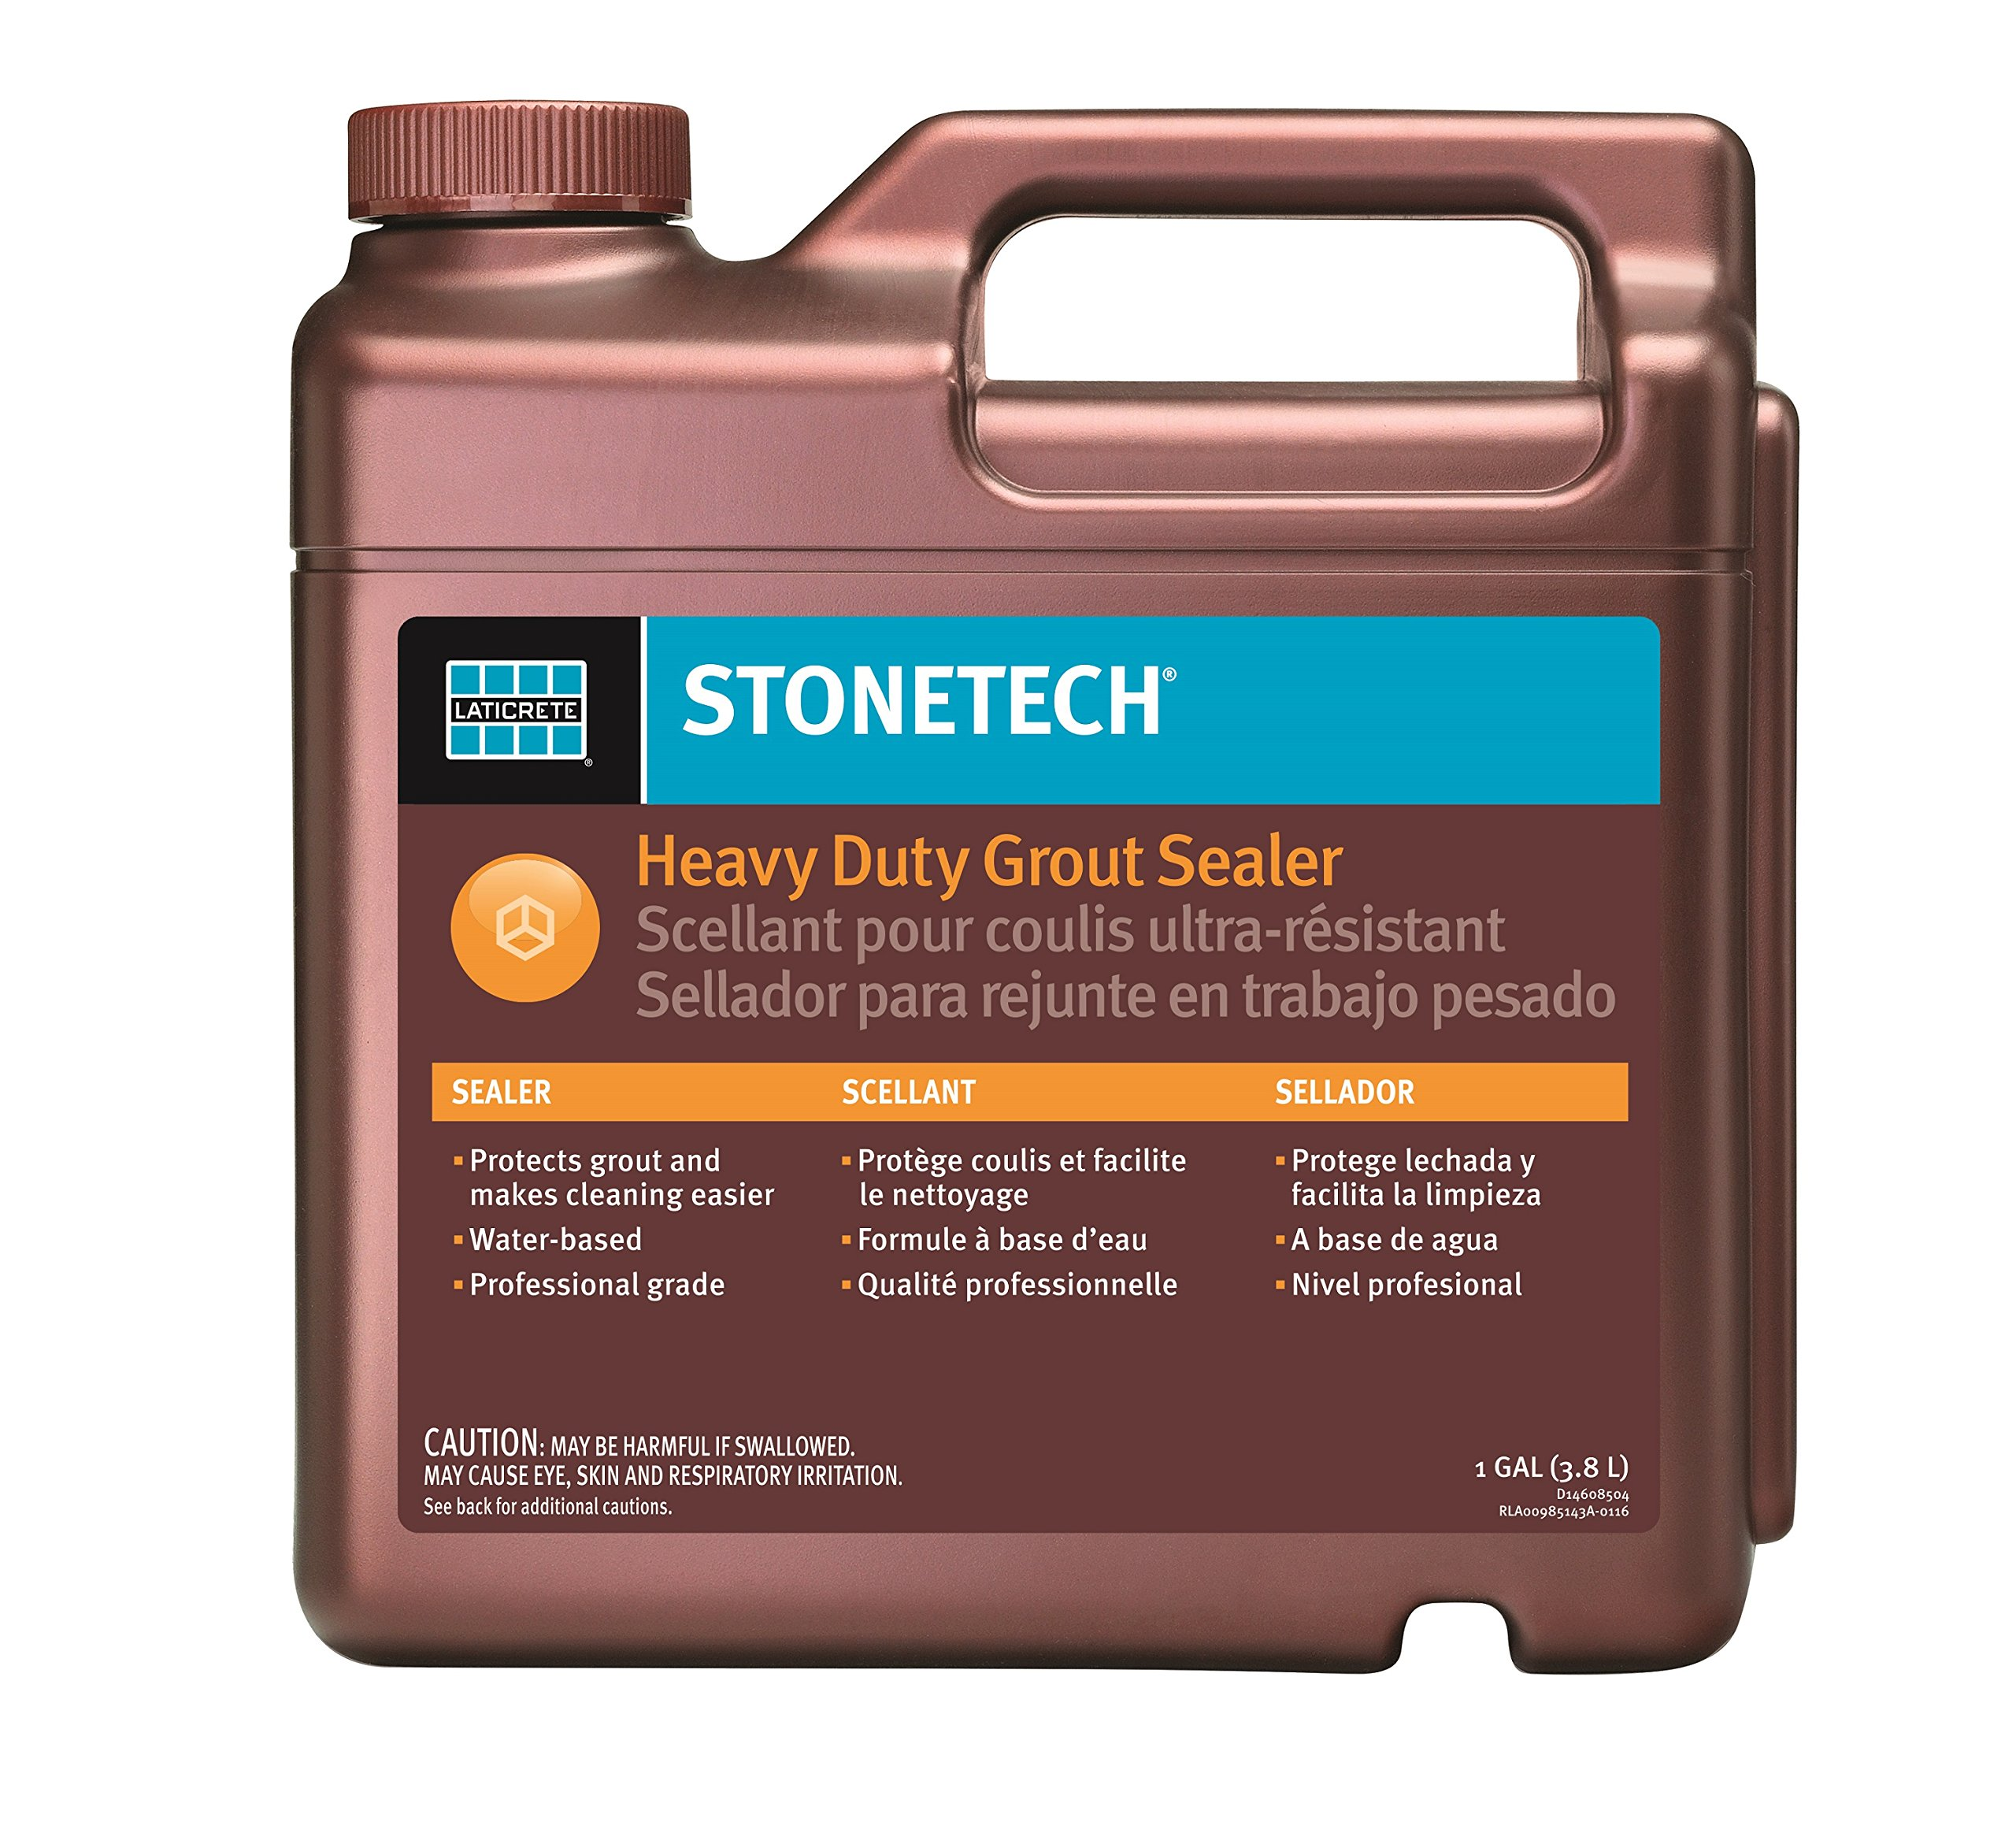 StoneTech Heavy Duty Grout Sealer, 1-Gallon (3.785L) by StoneTech